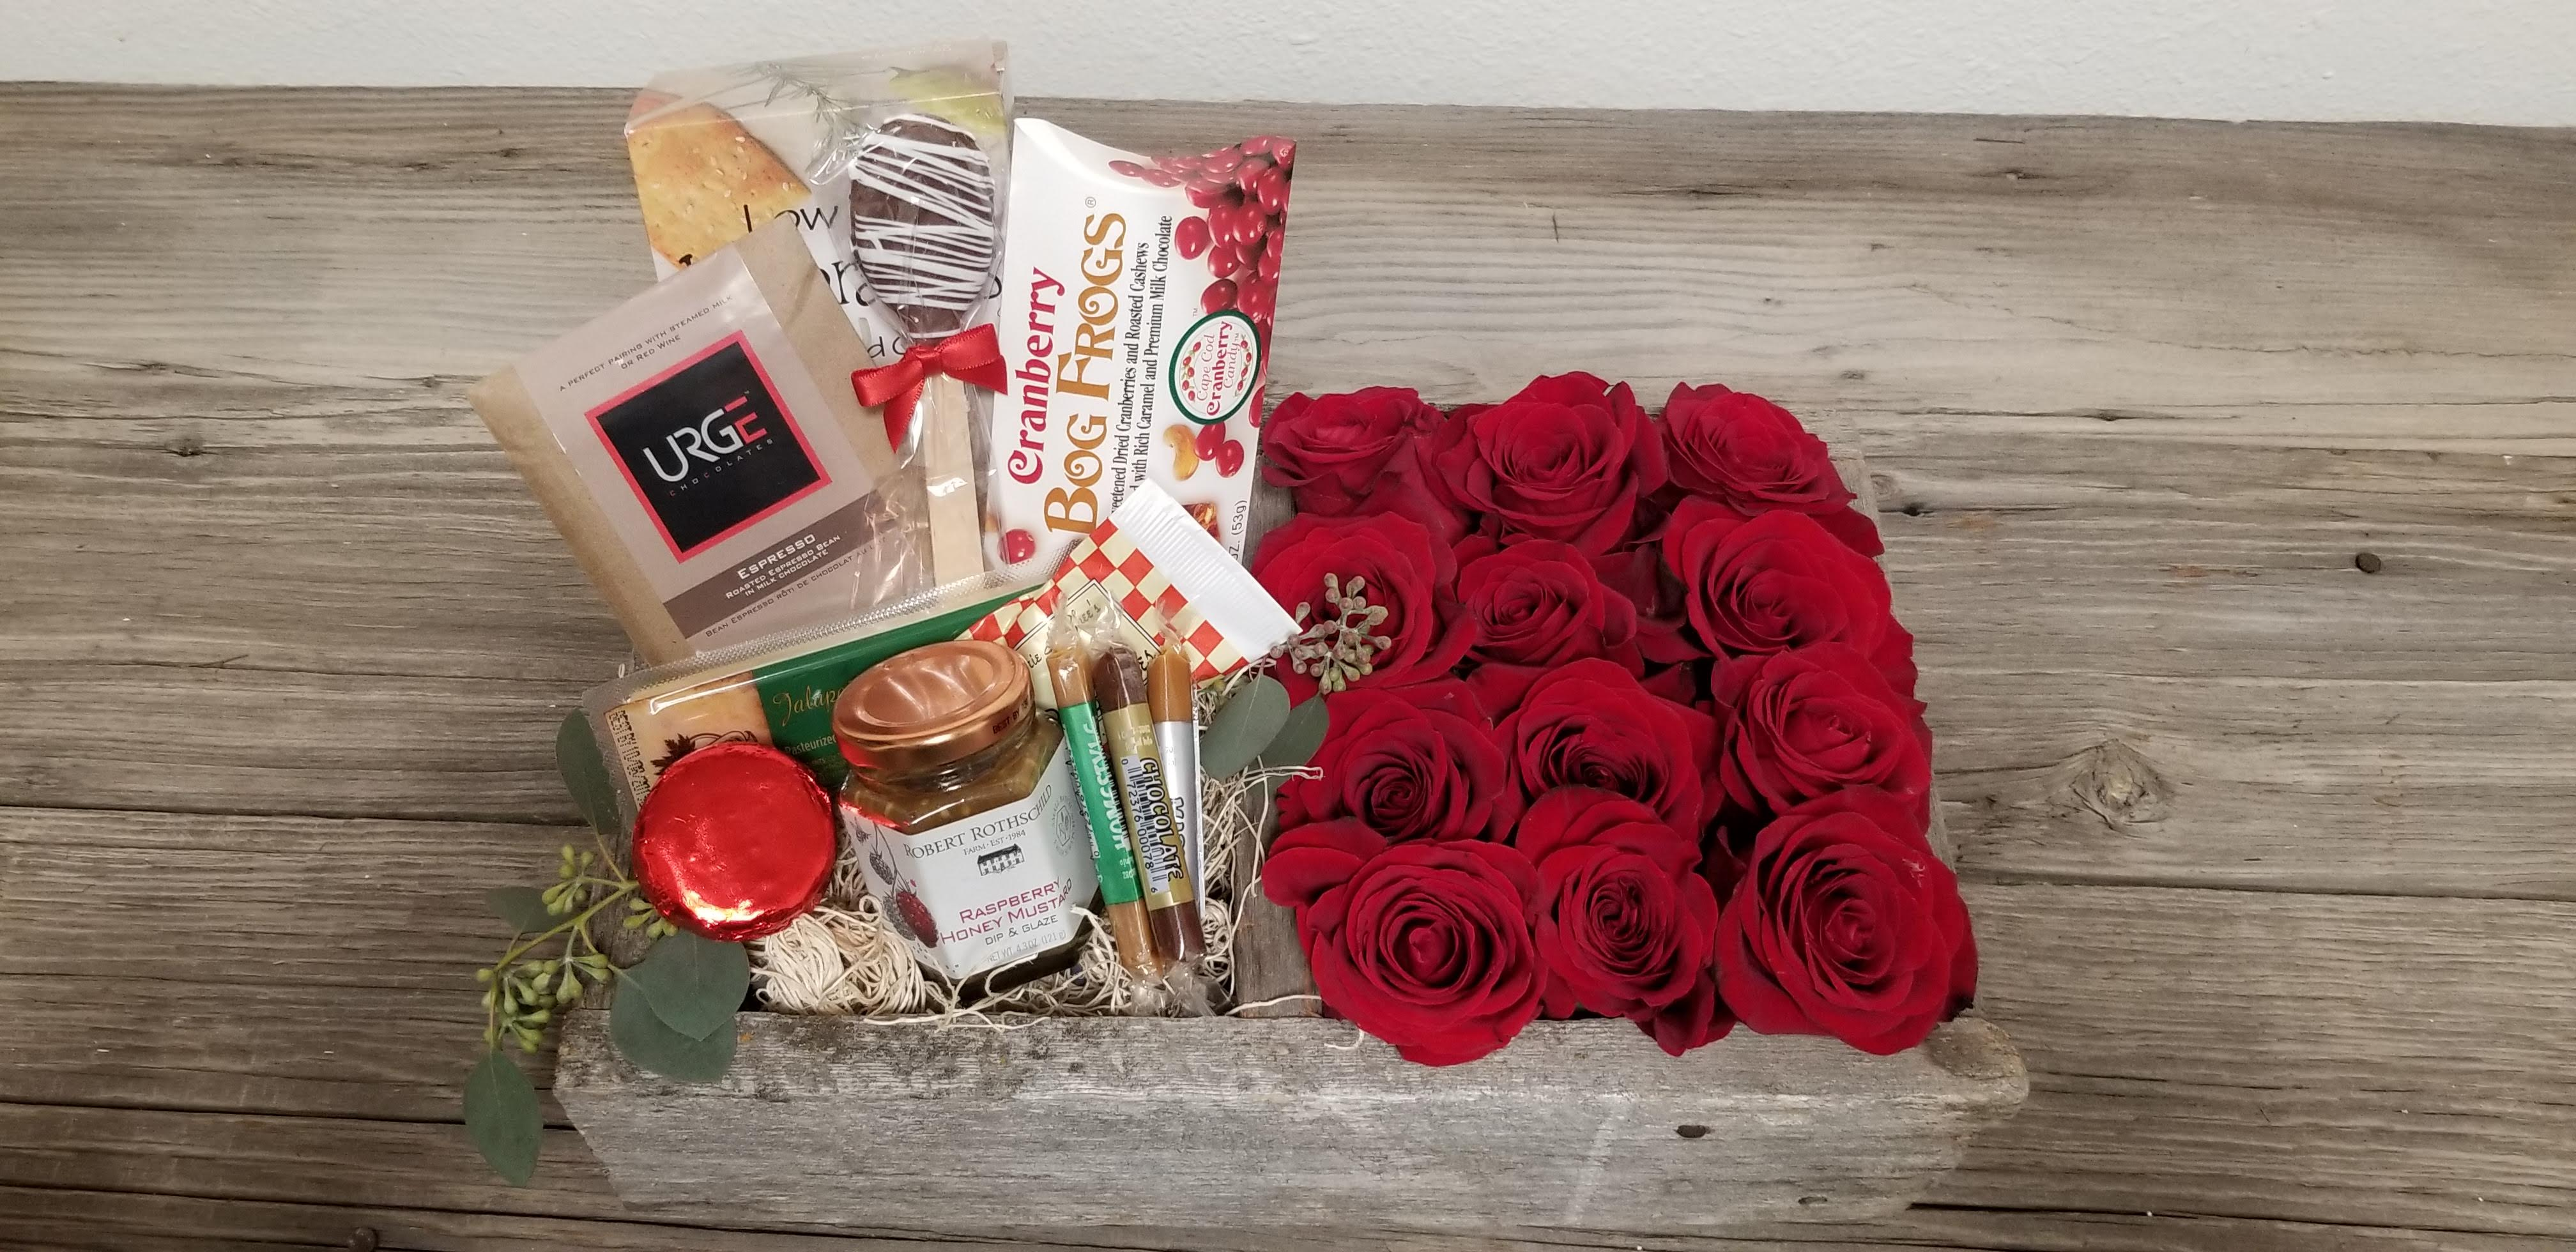 Valentine's Flowers and Gourmet Food in Barn wood Box